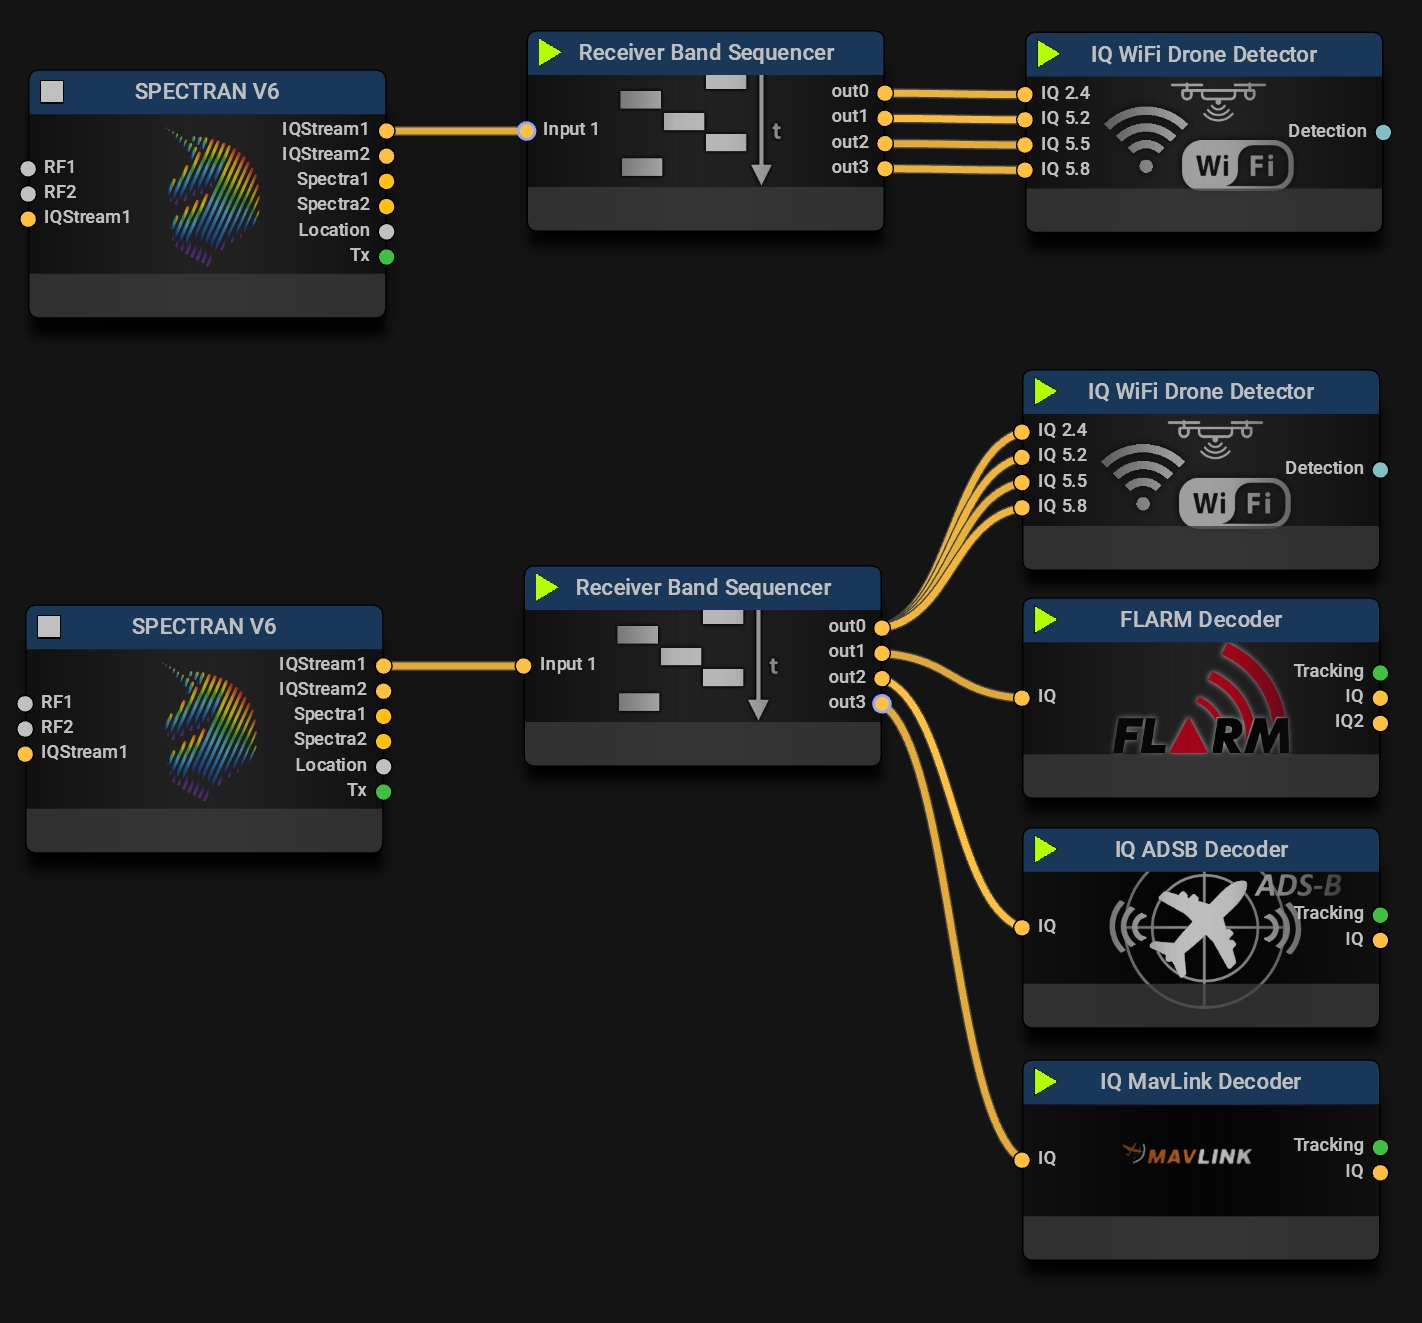 Typical Missions for the Receiver Band Sequencer